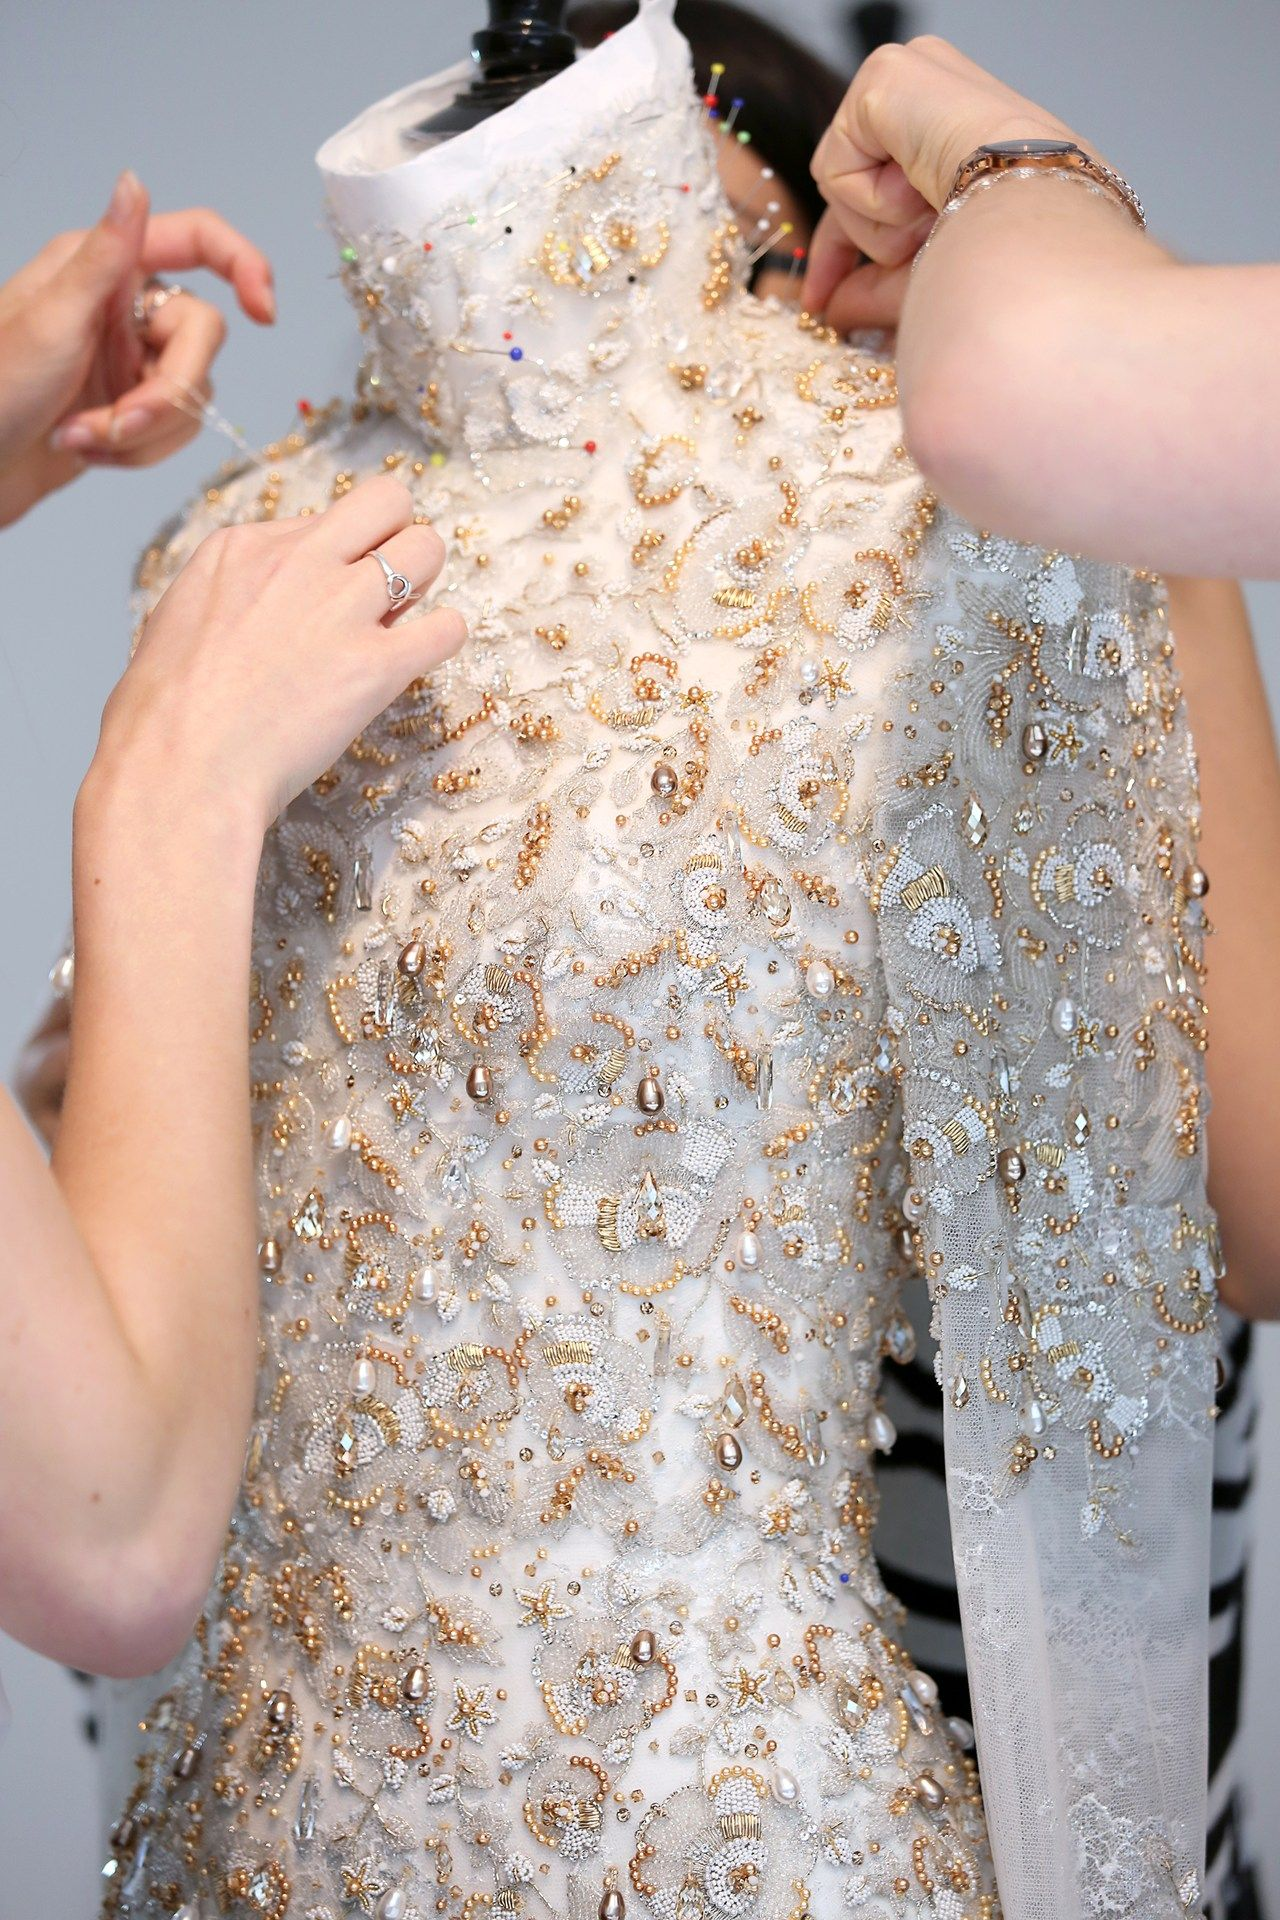 The making of a couture bride atelier and